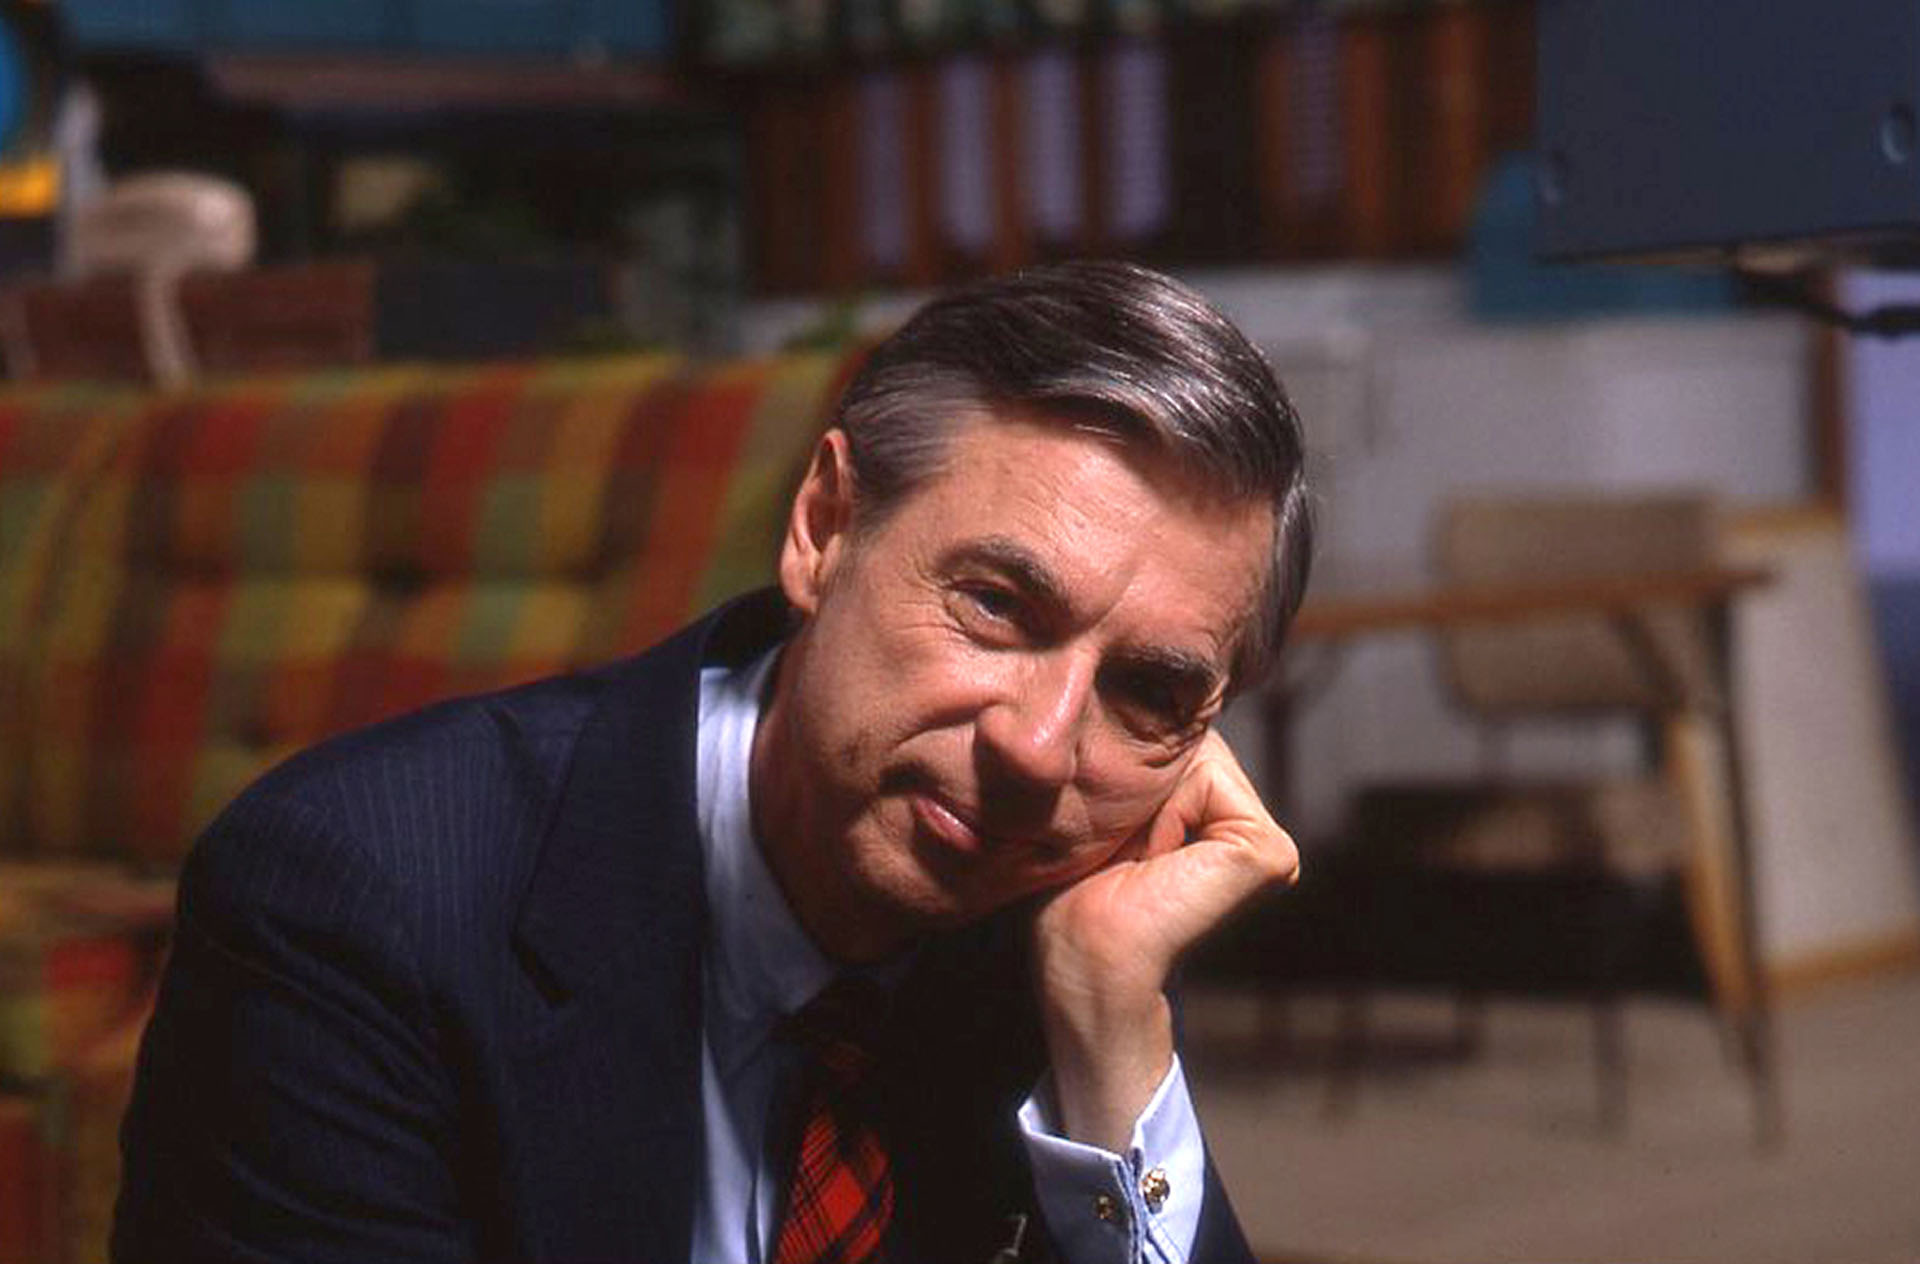 Fred Rogers Faith Played A Big Role In His Lessons For Children Opinion Lehighvalleylive Com